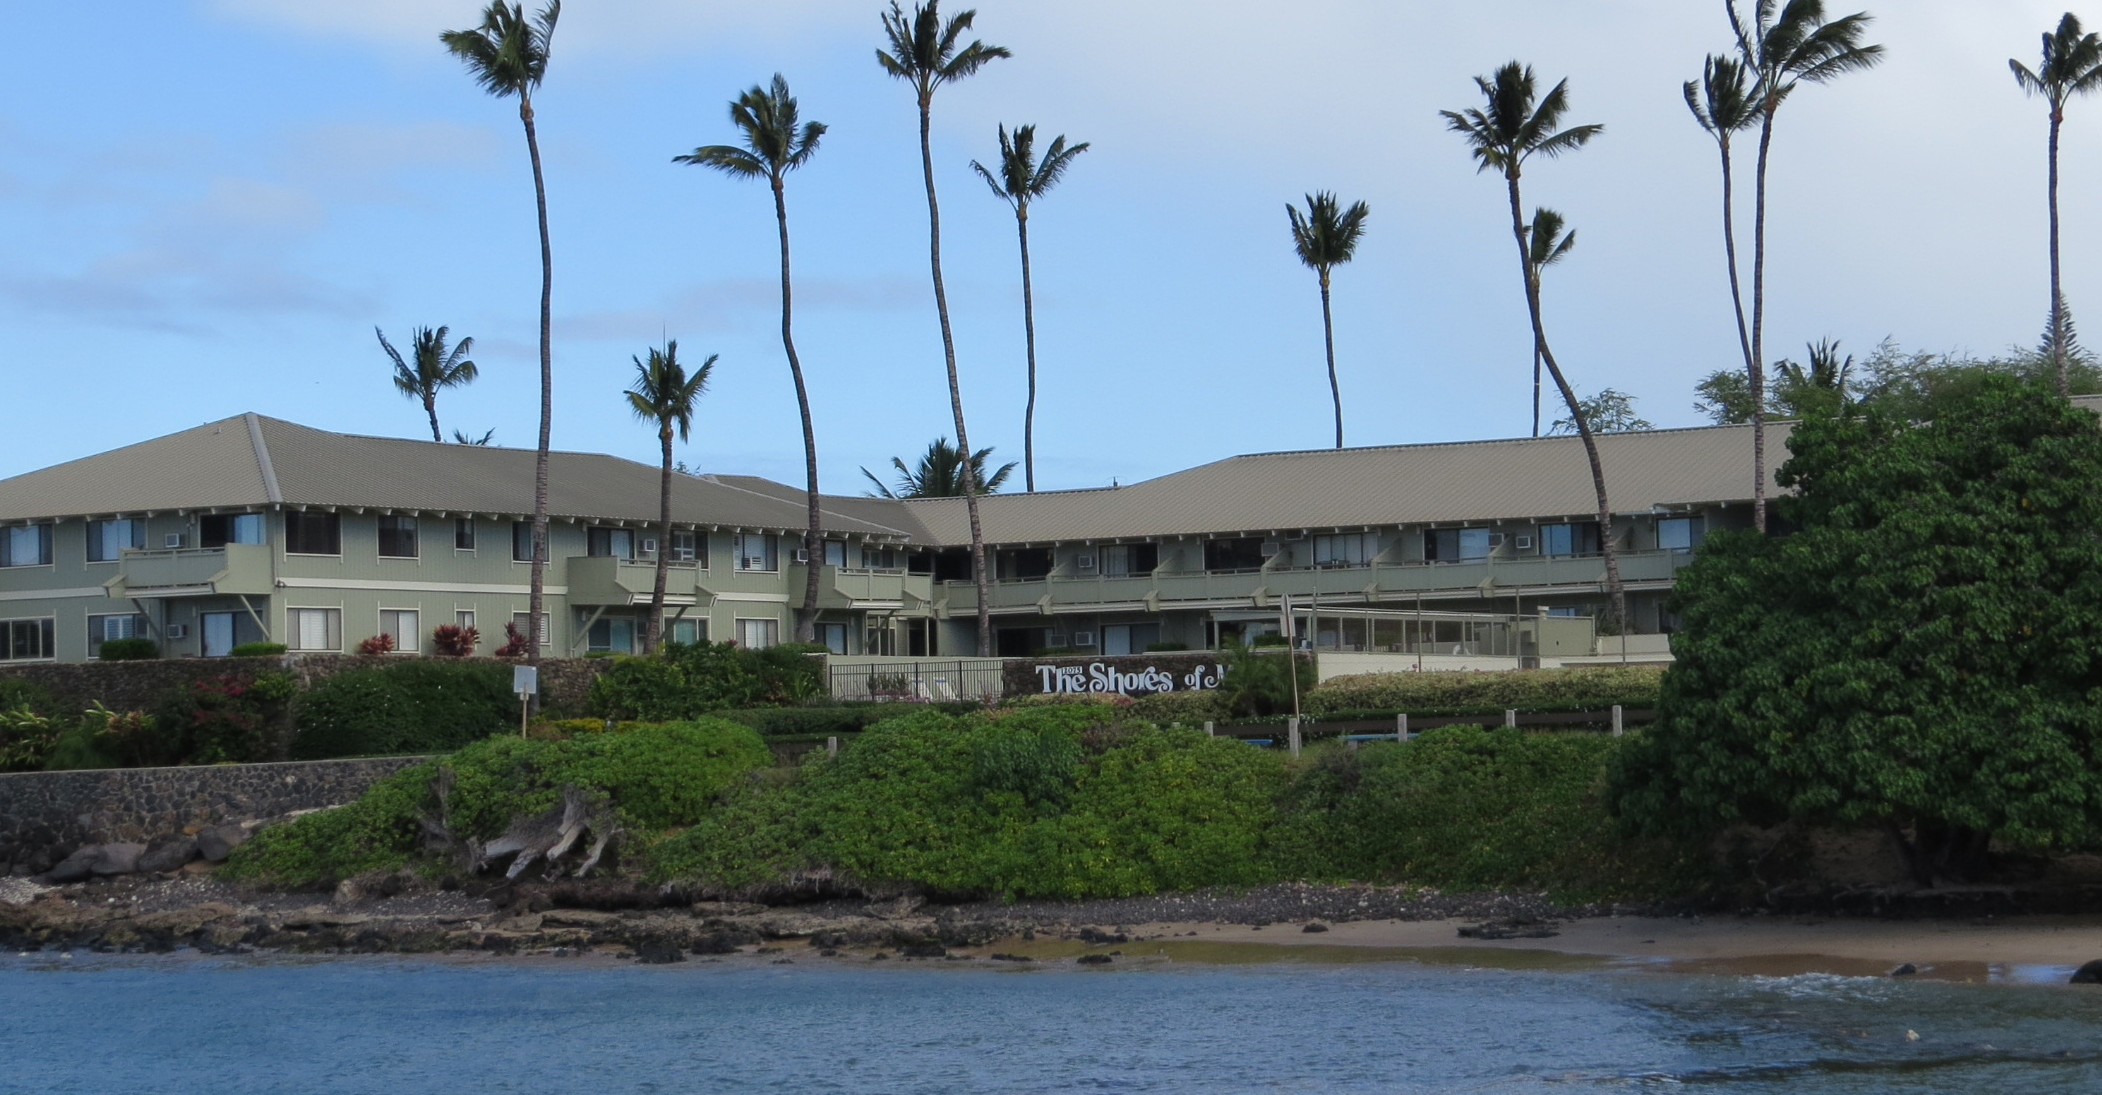 Slide 6 - Front of Shores of Maui from Cove Park